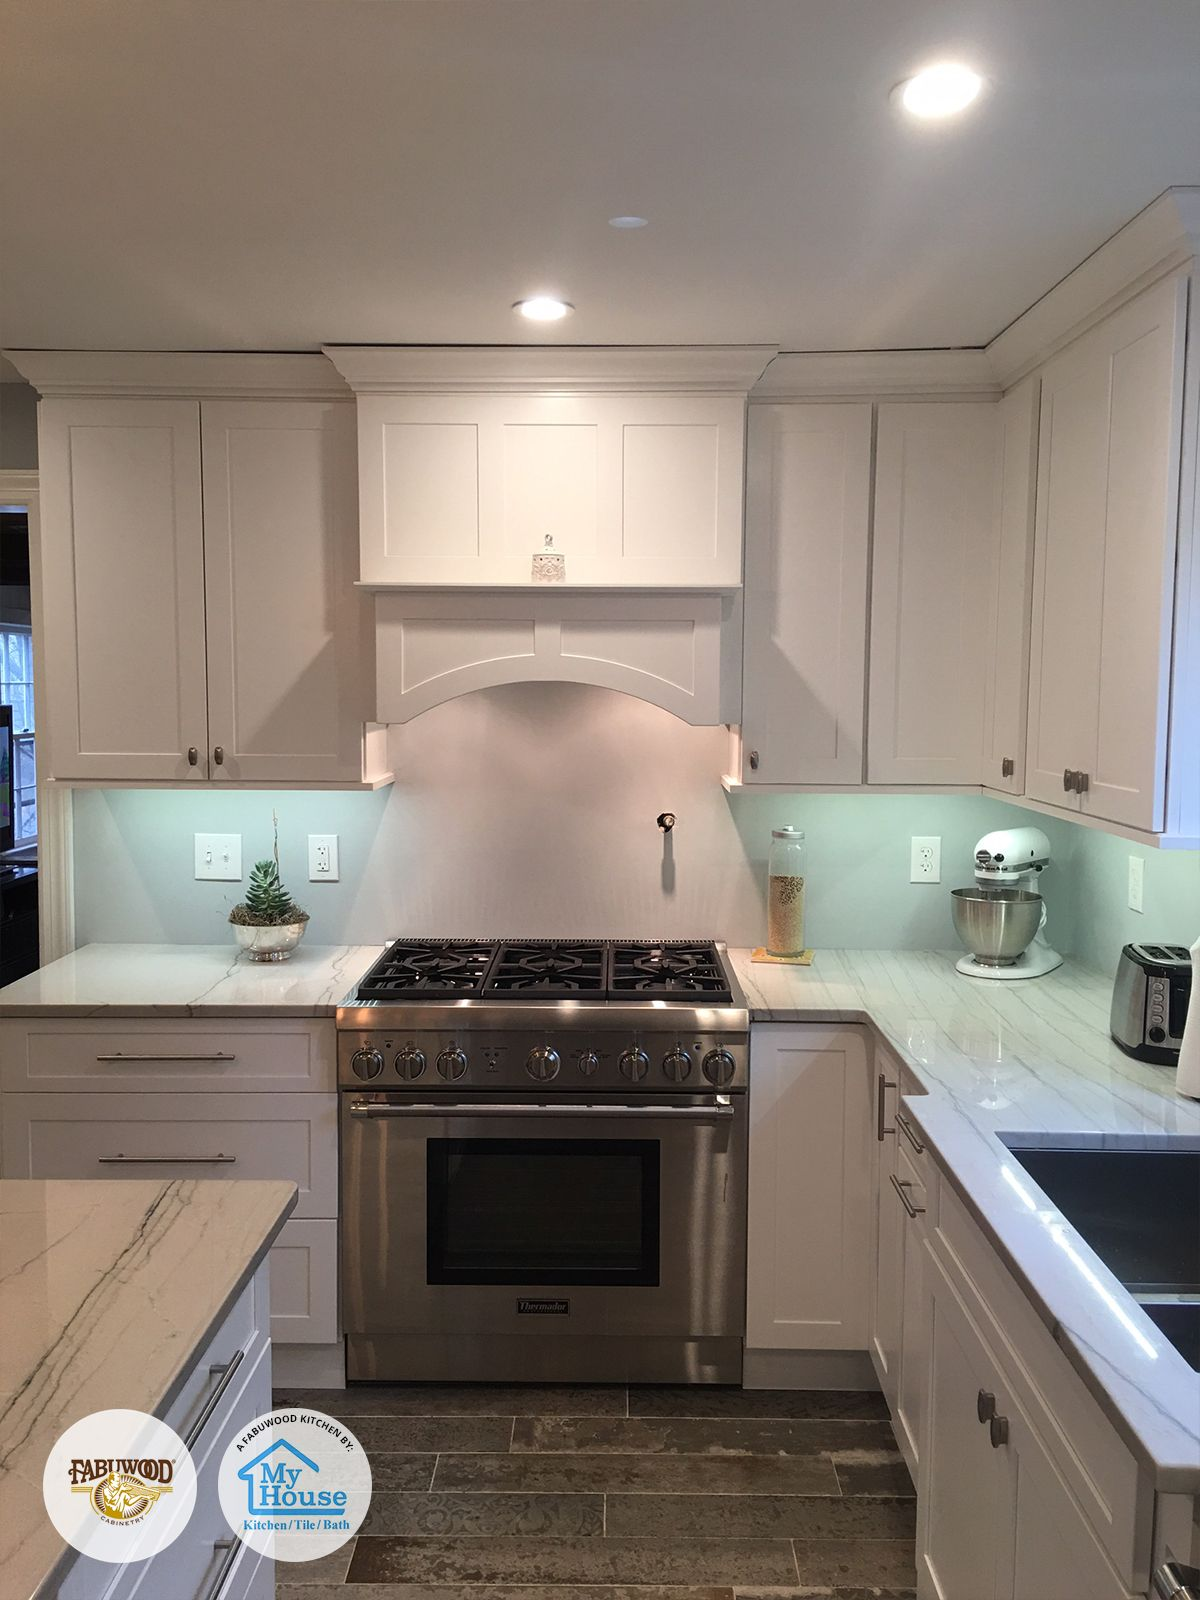 From The Beautiful Lighting To The Spectacular Backsplash My House Kitchen Tile Bath Located In Union Nj Can Fabuwood Cabinets Kitchen Kitchen Cabinetry